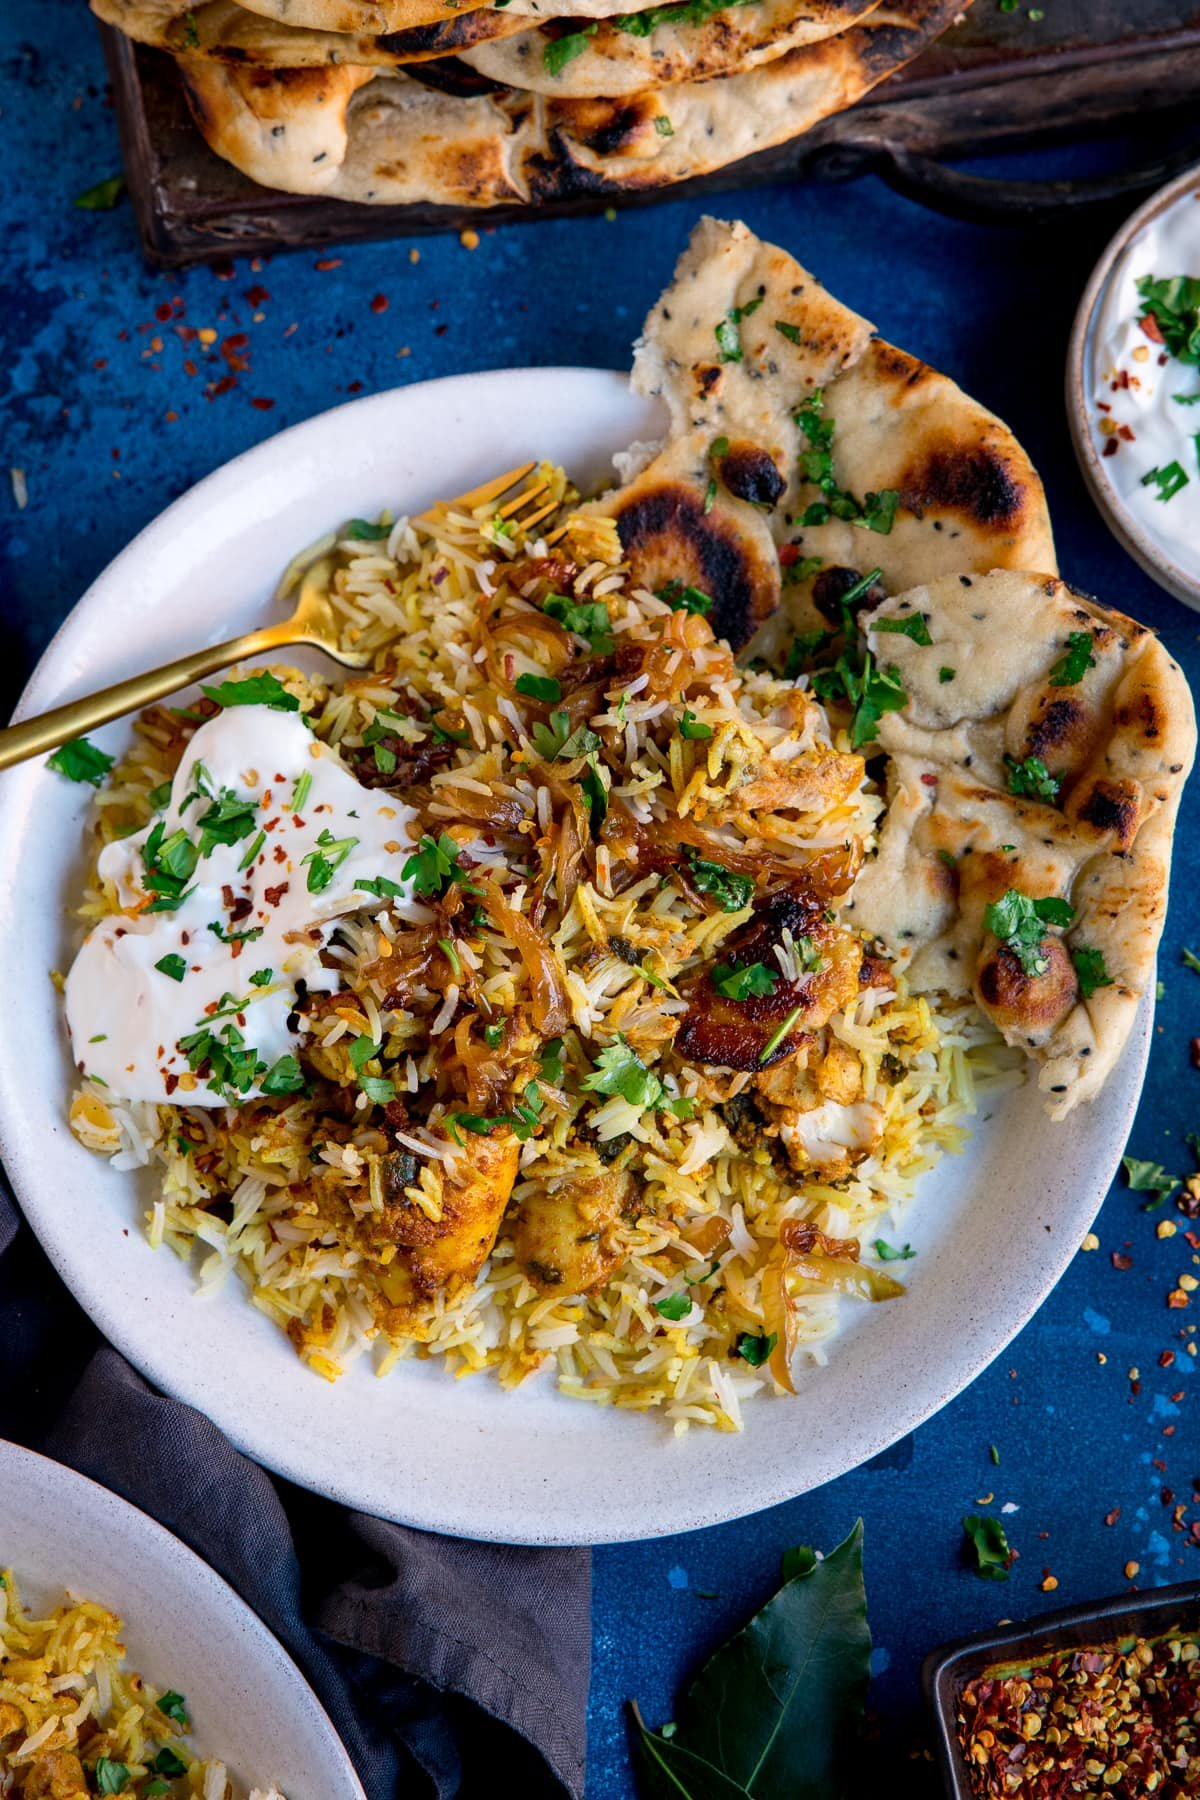 chicken biryani and natural yogurt on a plate with naan bread. Plate is on a blue background.